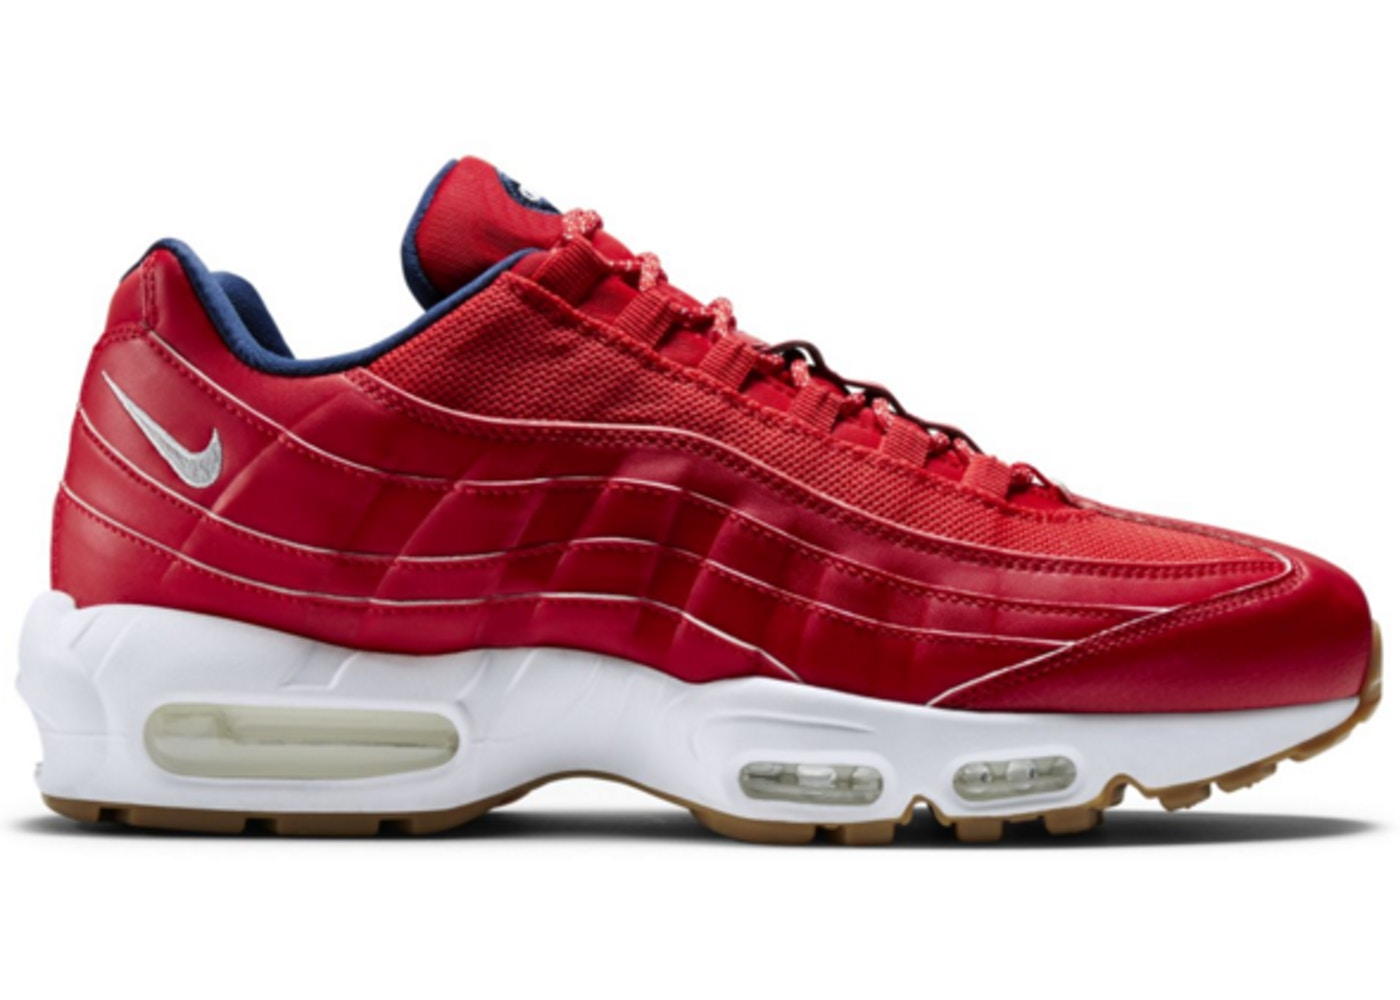 pas cher pour réduction 25113 53f26 Air Max 95 Independence Day